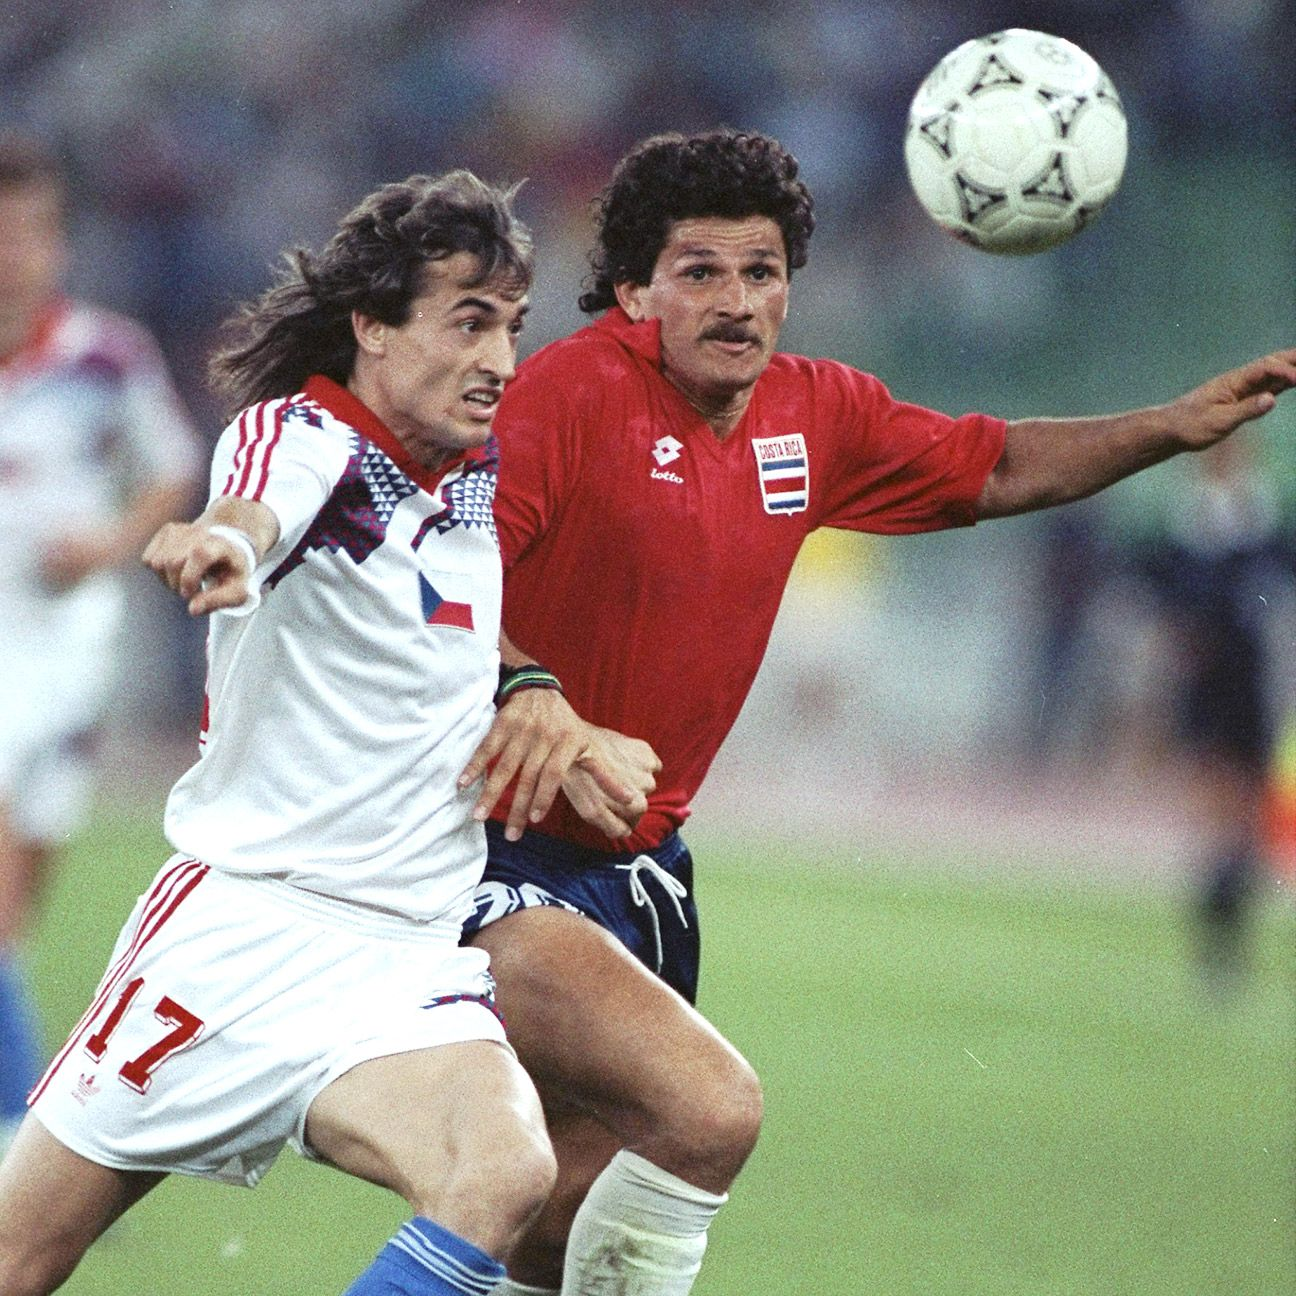 Mauricio Montero, right, and Costa Rica reached the round of 16 in their first World Cup appearance in 1990.